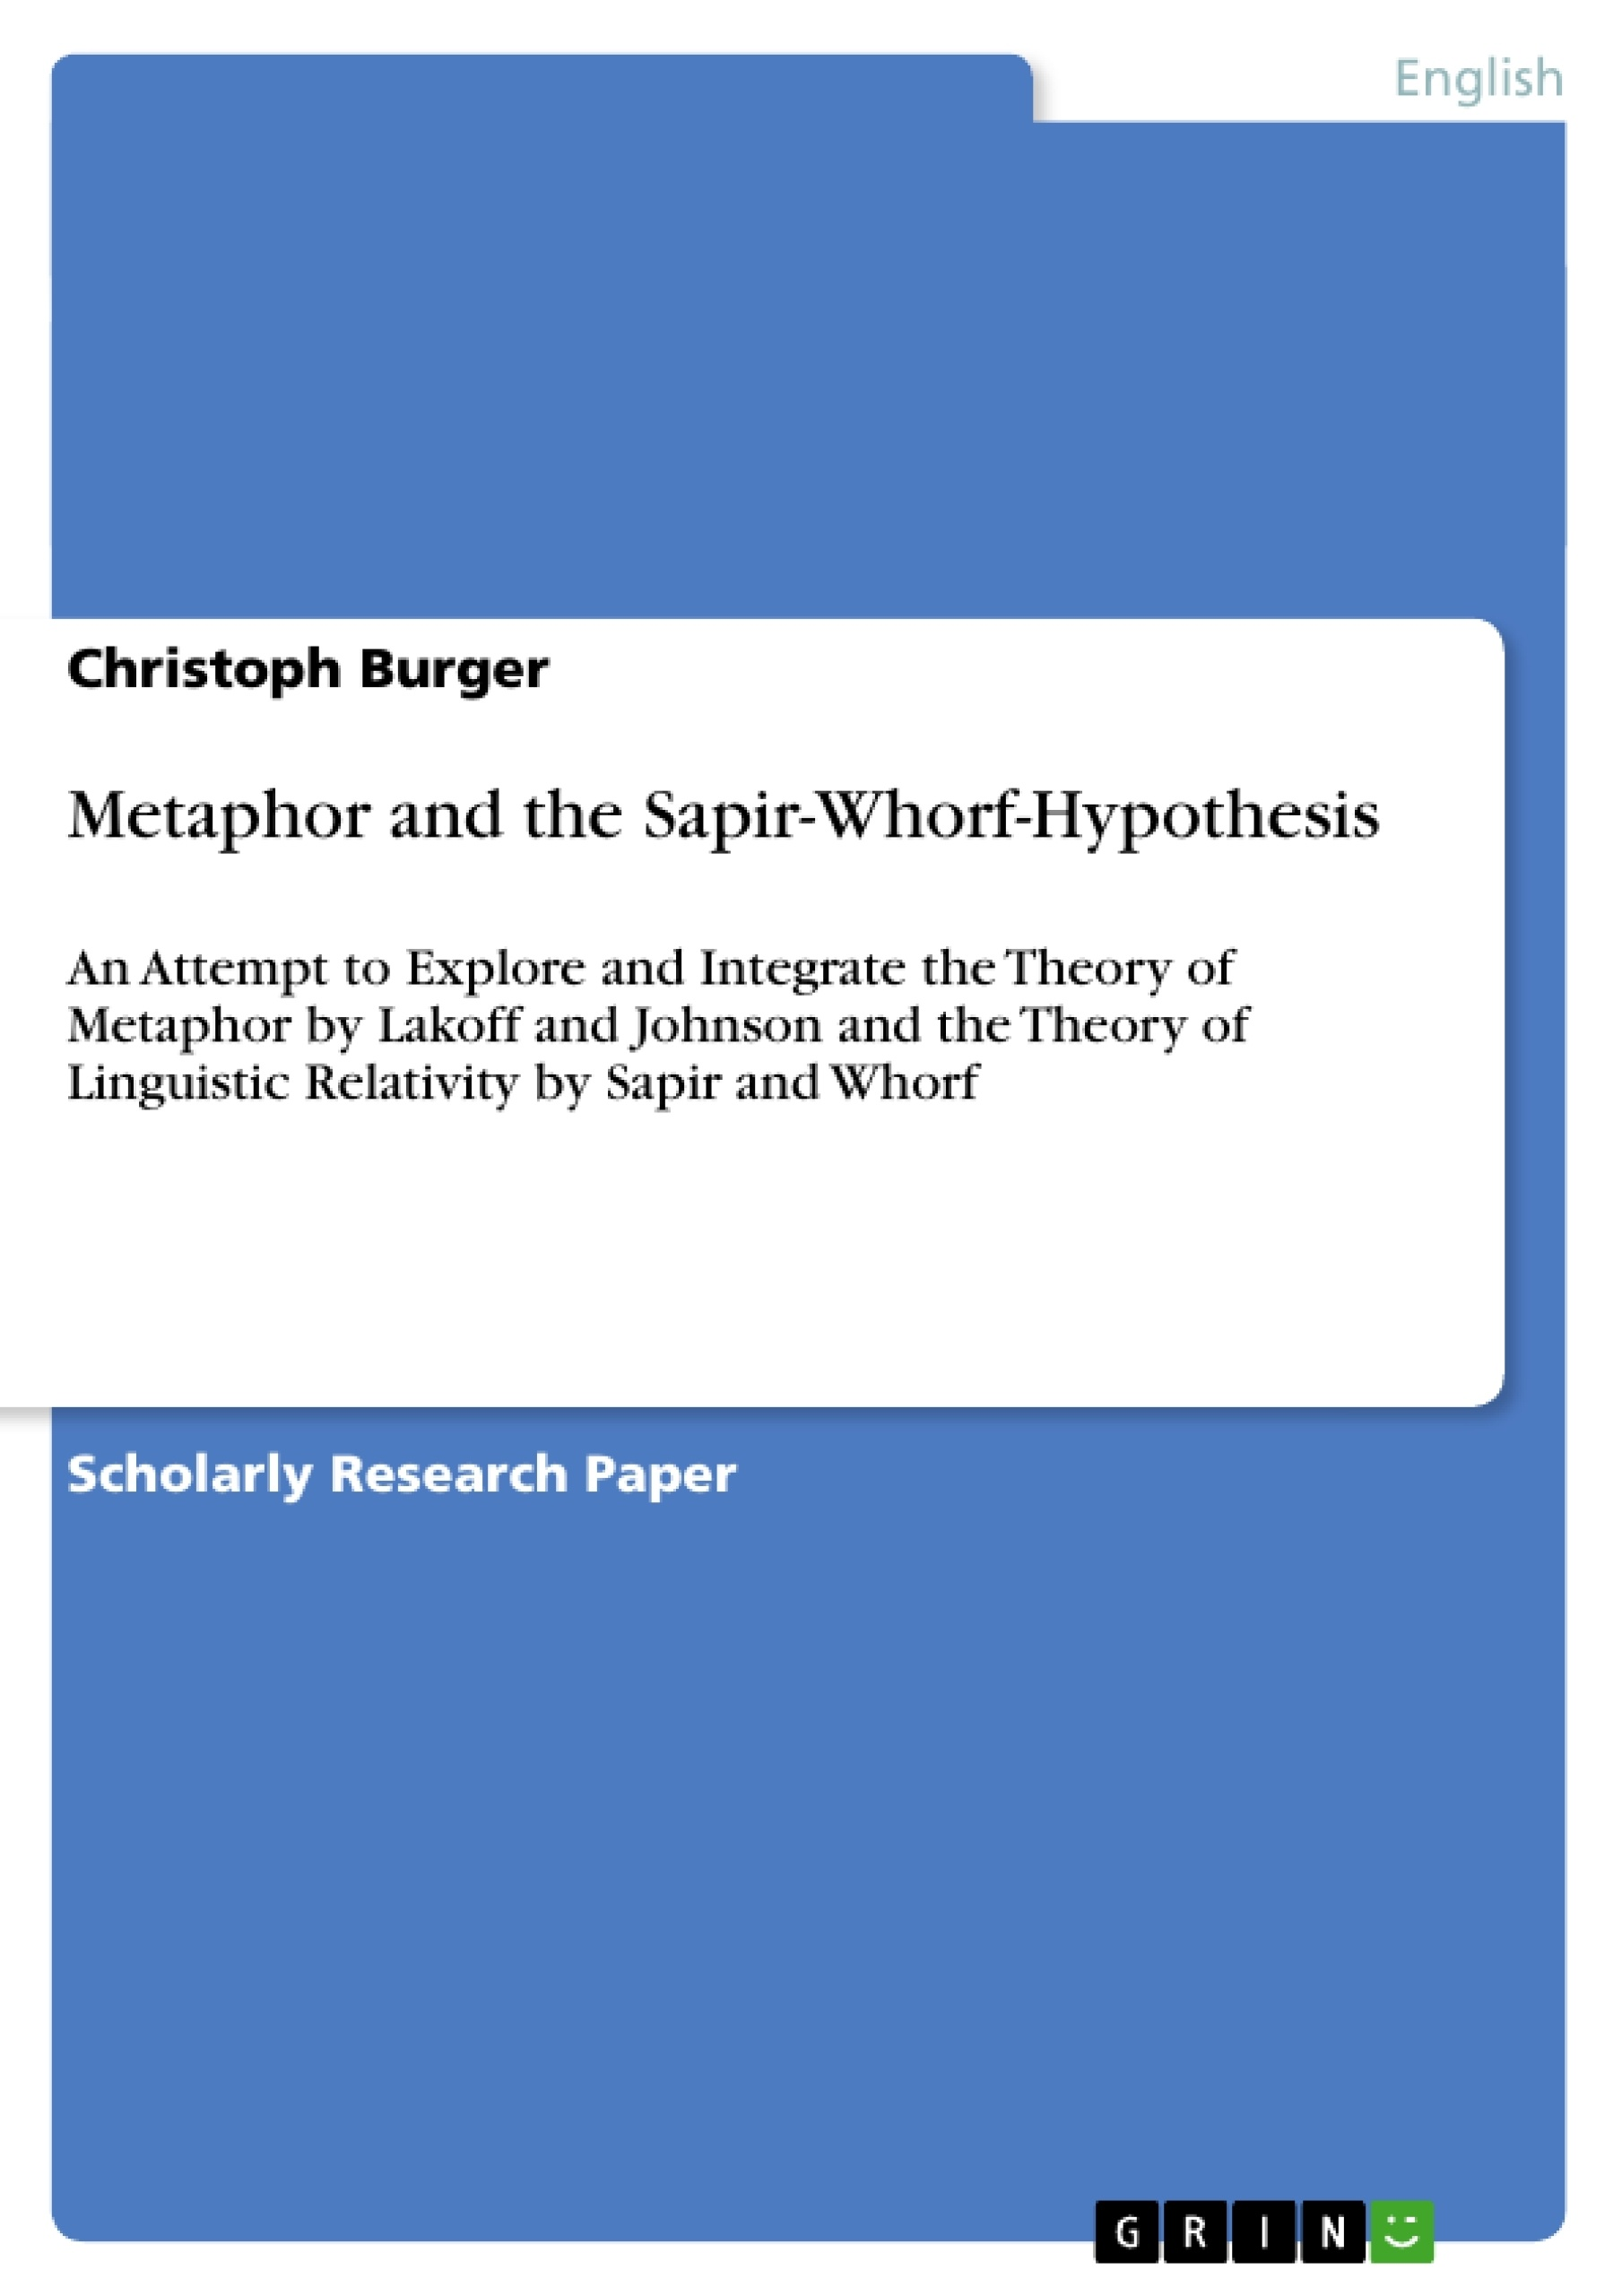 Title: Metaphor and the Sapir-Whorf-Hypothesis